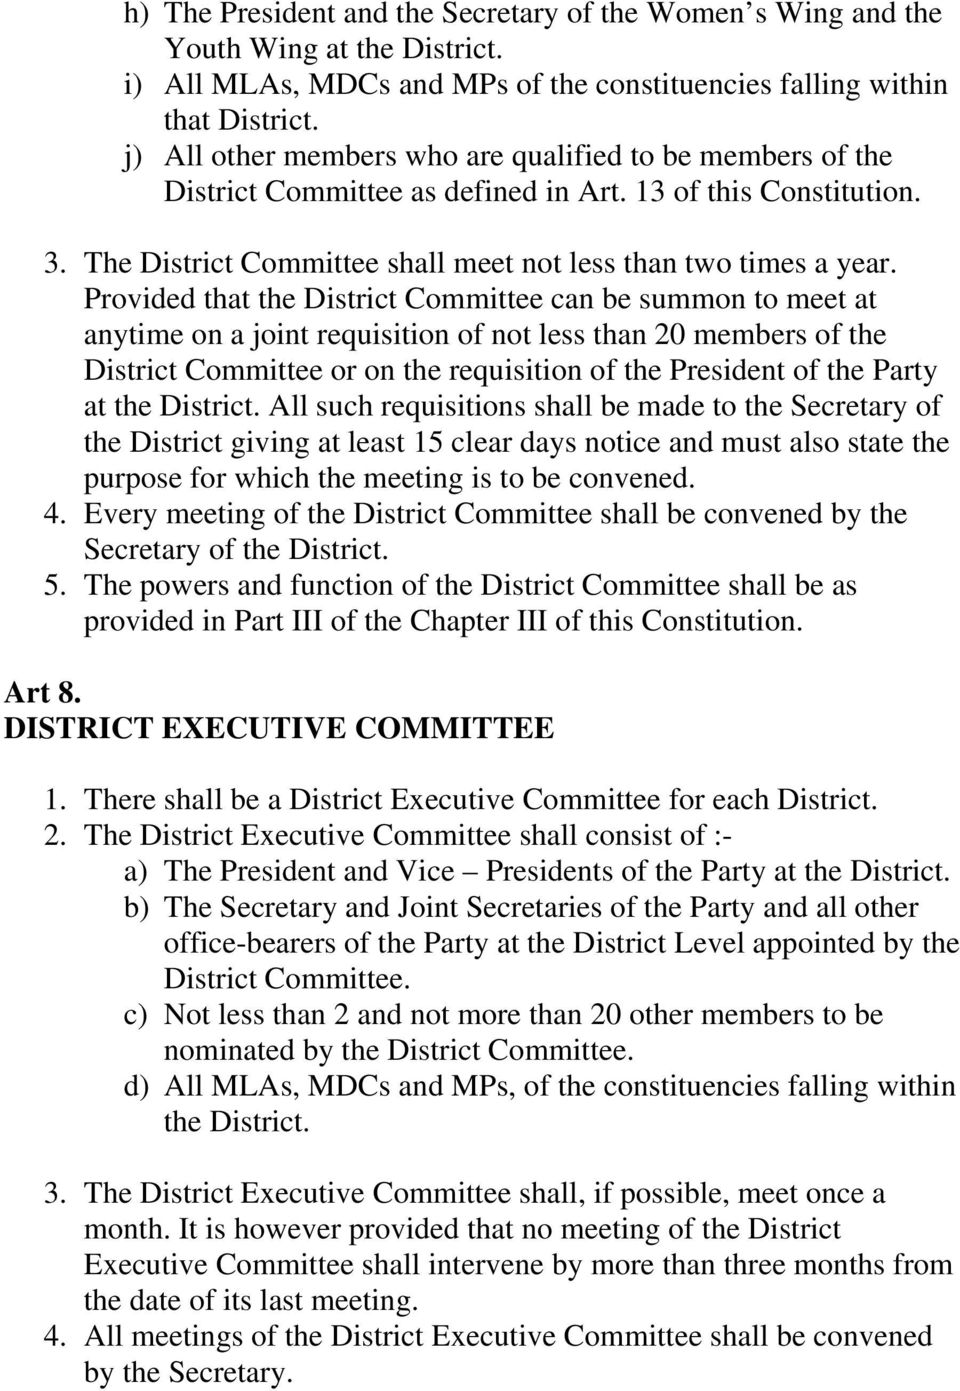 Provided that the District Committee can be summon to meet at anytime on a joint requisition of not less than 20 members of the District Committee or on the requisition of the President of the Party